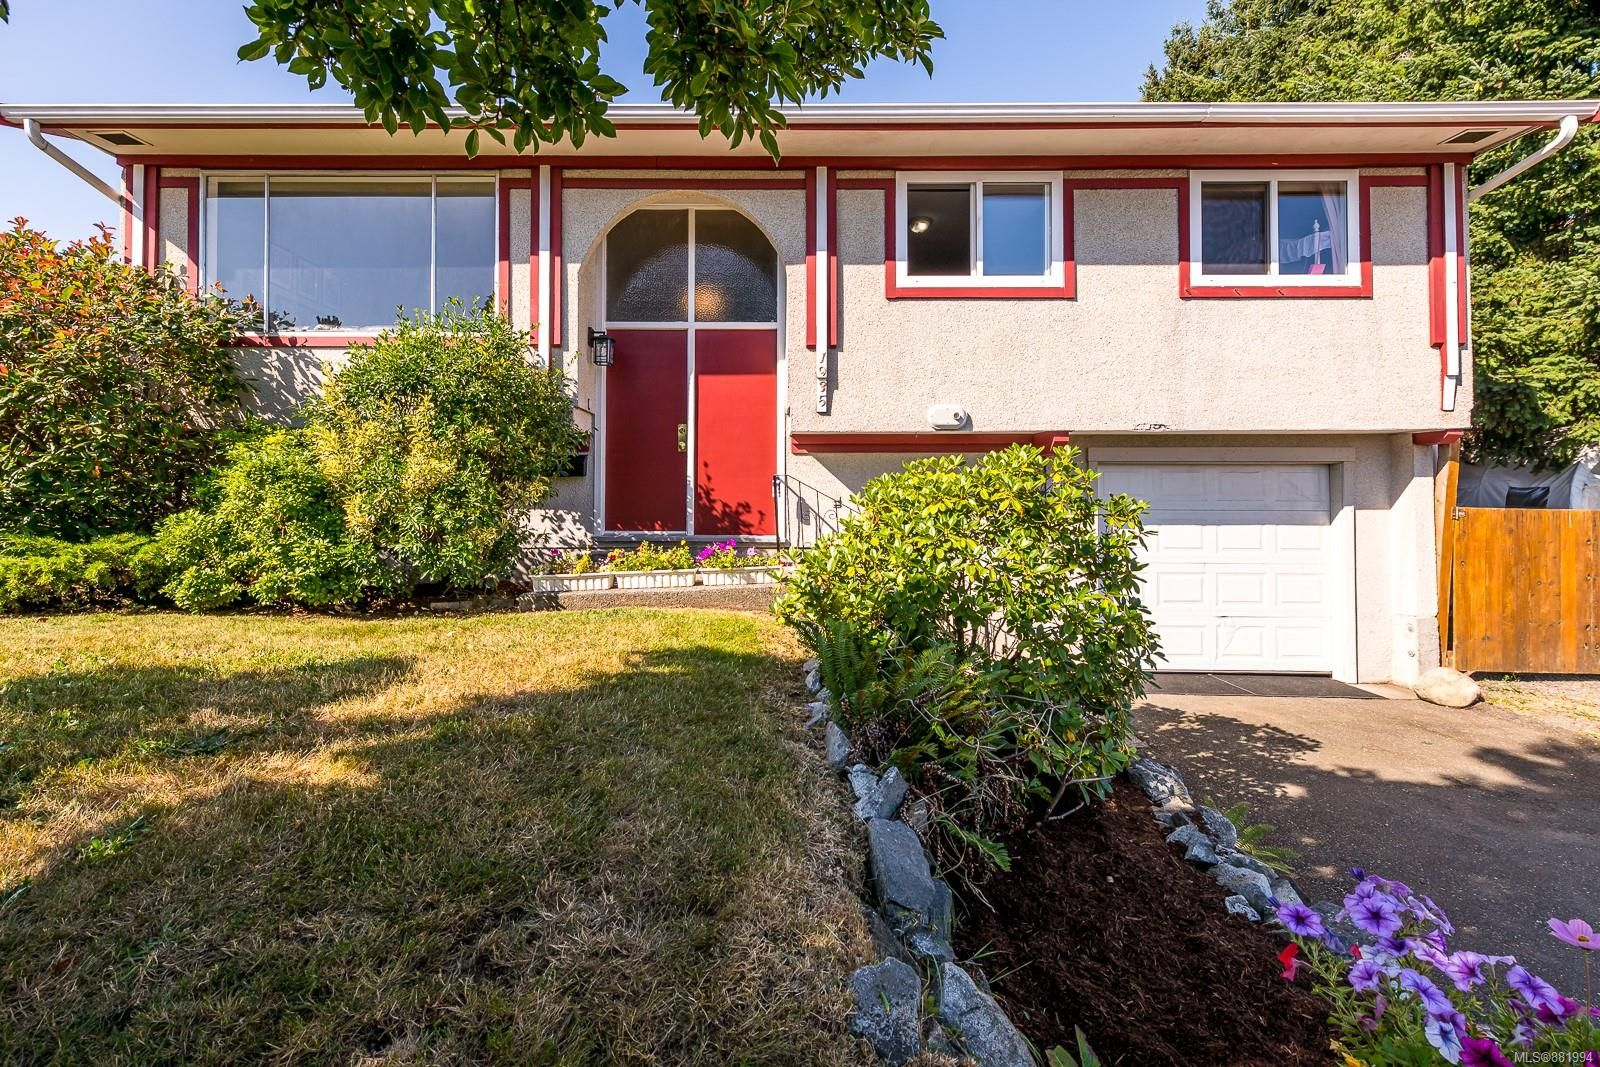 Photo 1: Photos: 1935 Fitzgerald Ave in : CV Courtenay City House for sale (Comox Valley)  : MLS®# 881994